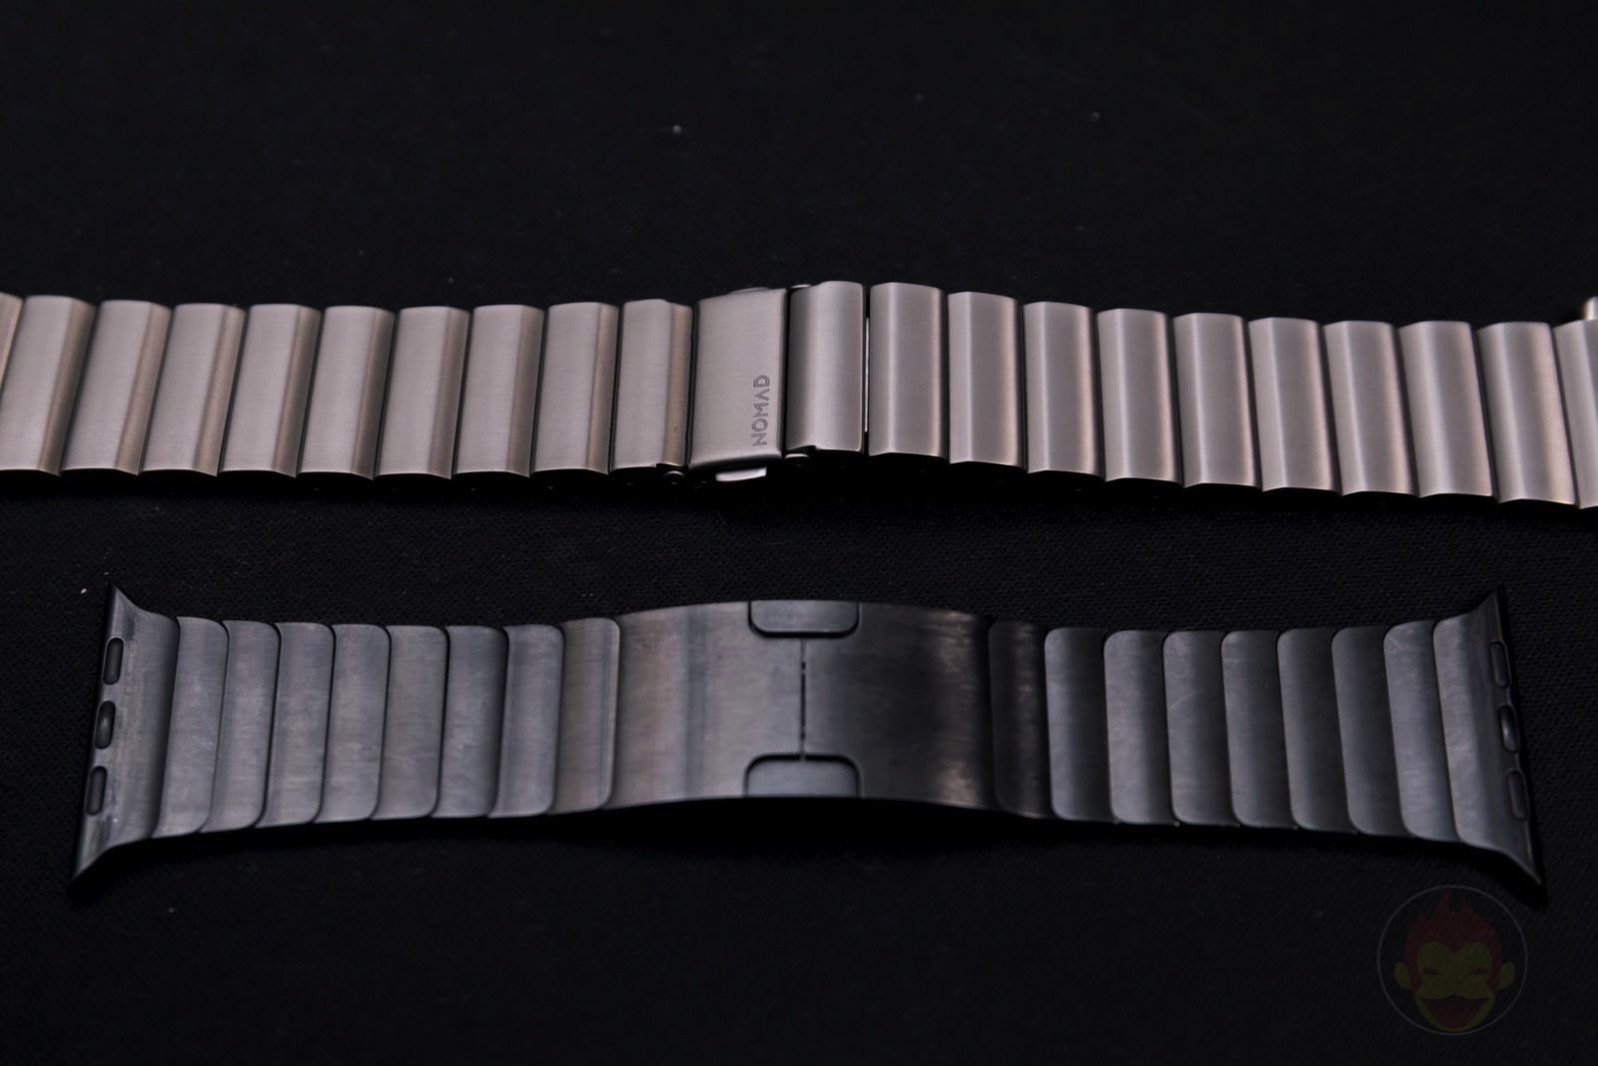 Apple-Watch-Nomad-Titanium-Band-Review-09.jpg